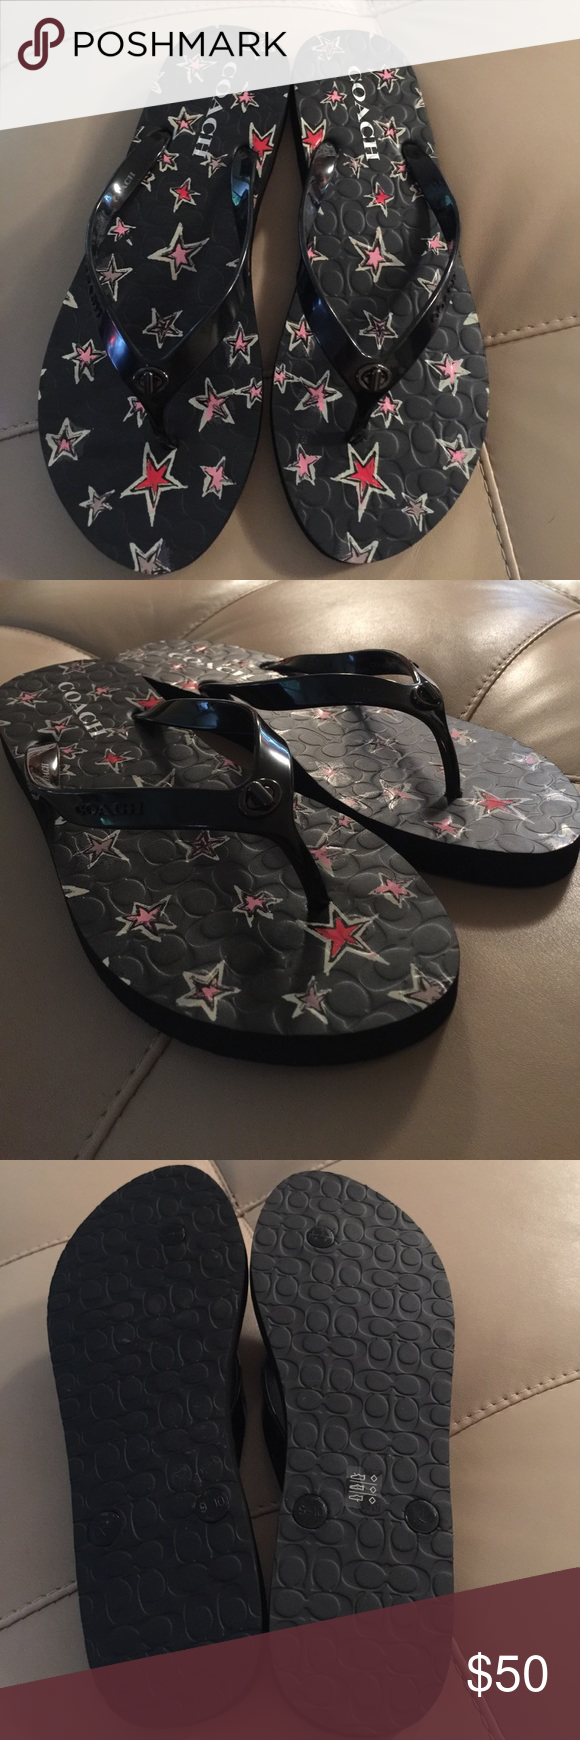 🆕Adorable Coach Flip Flops 🆕 Never worn Adorable COACH Flip Flops. Black with red, pink and white stars. Super comfy! I bought them last year and never wore them (have another pair just like them 🤷🏼♀️)! Size 9 or 39. Coach Shoes Sandals